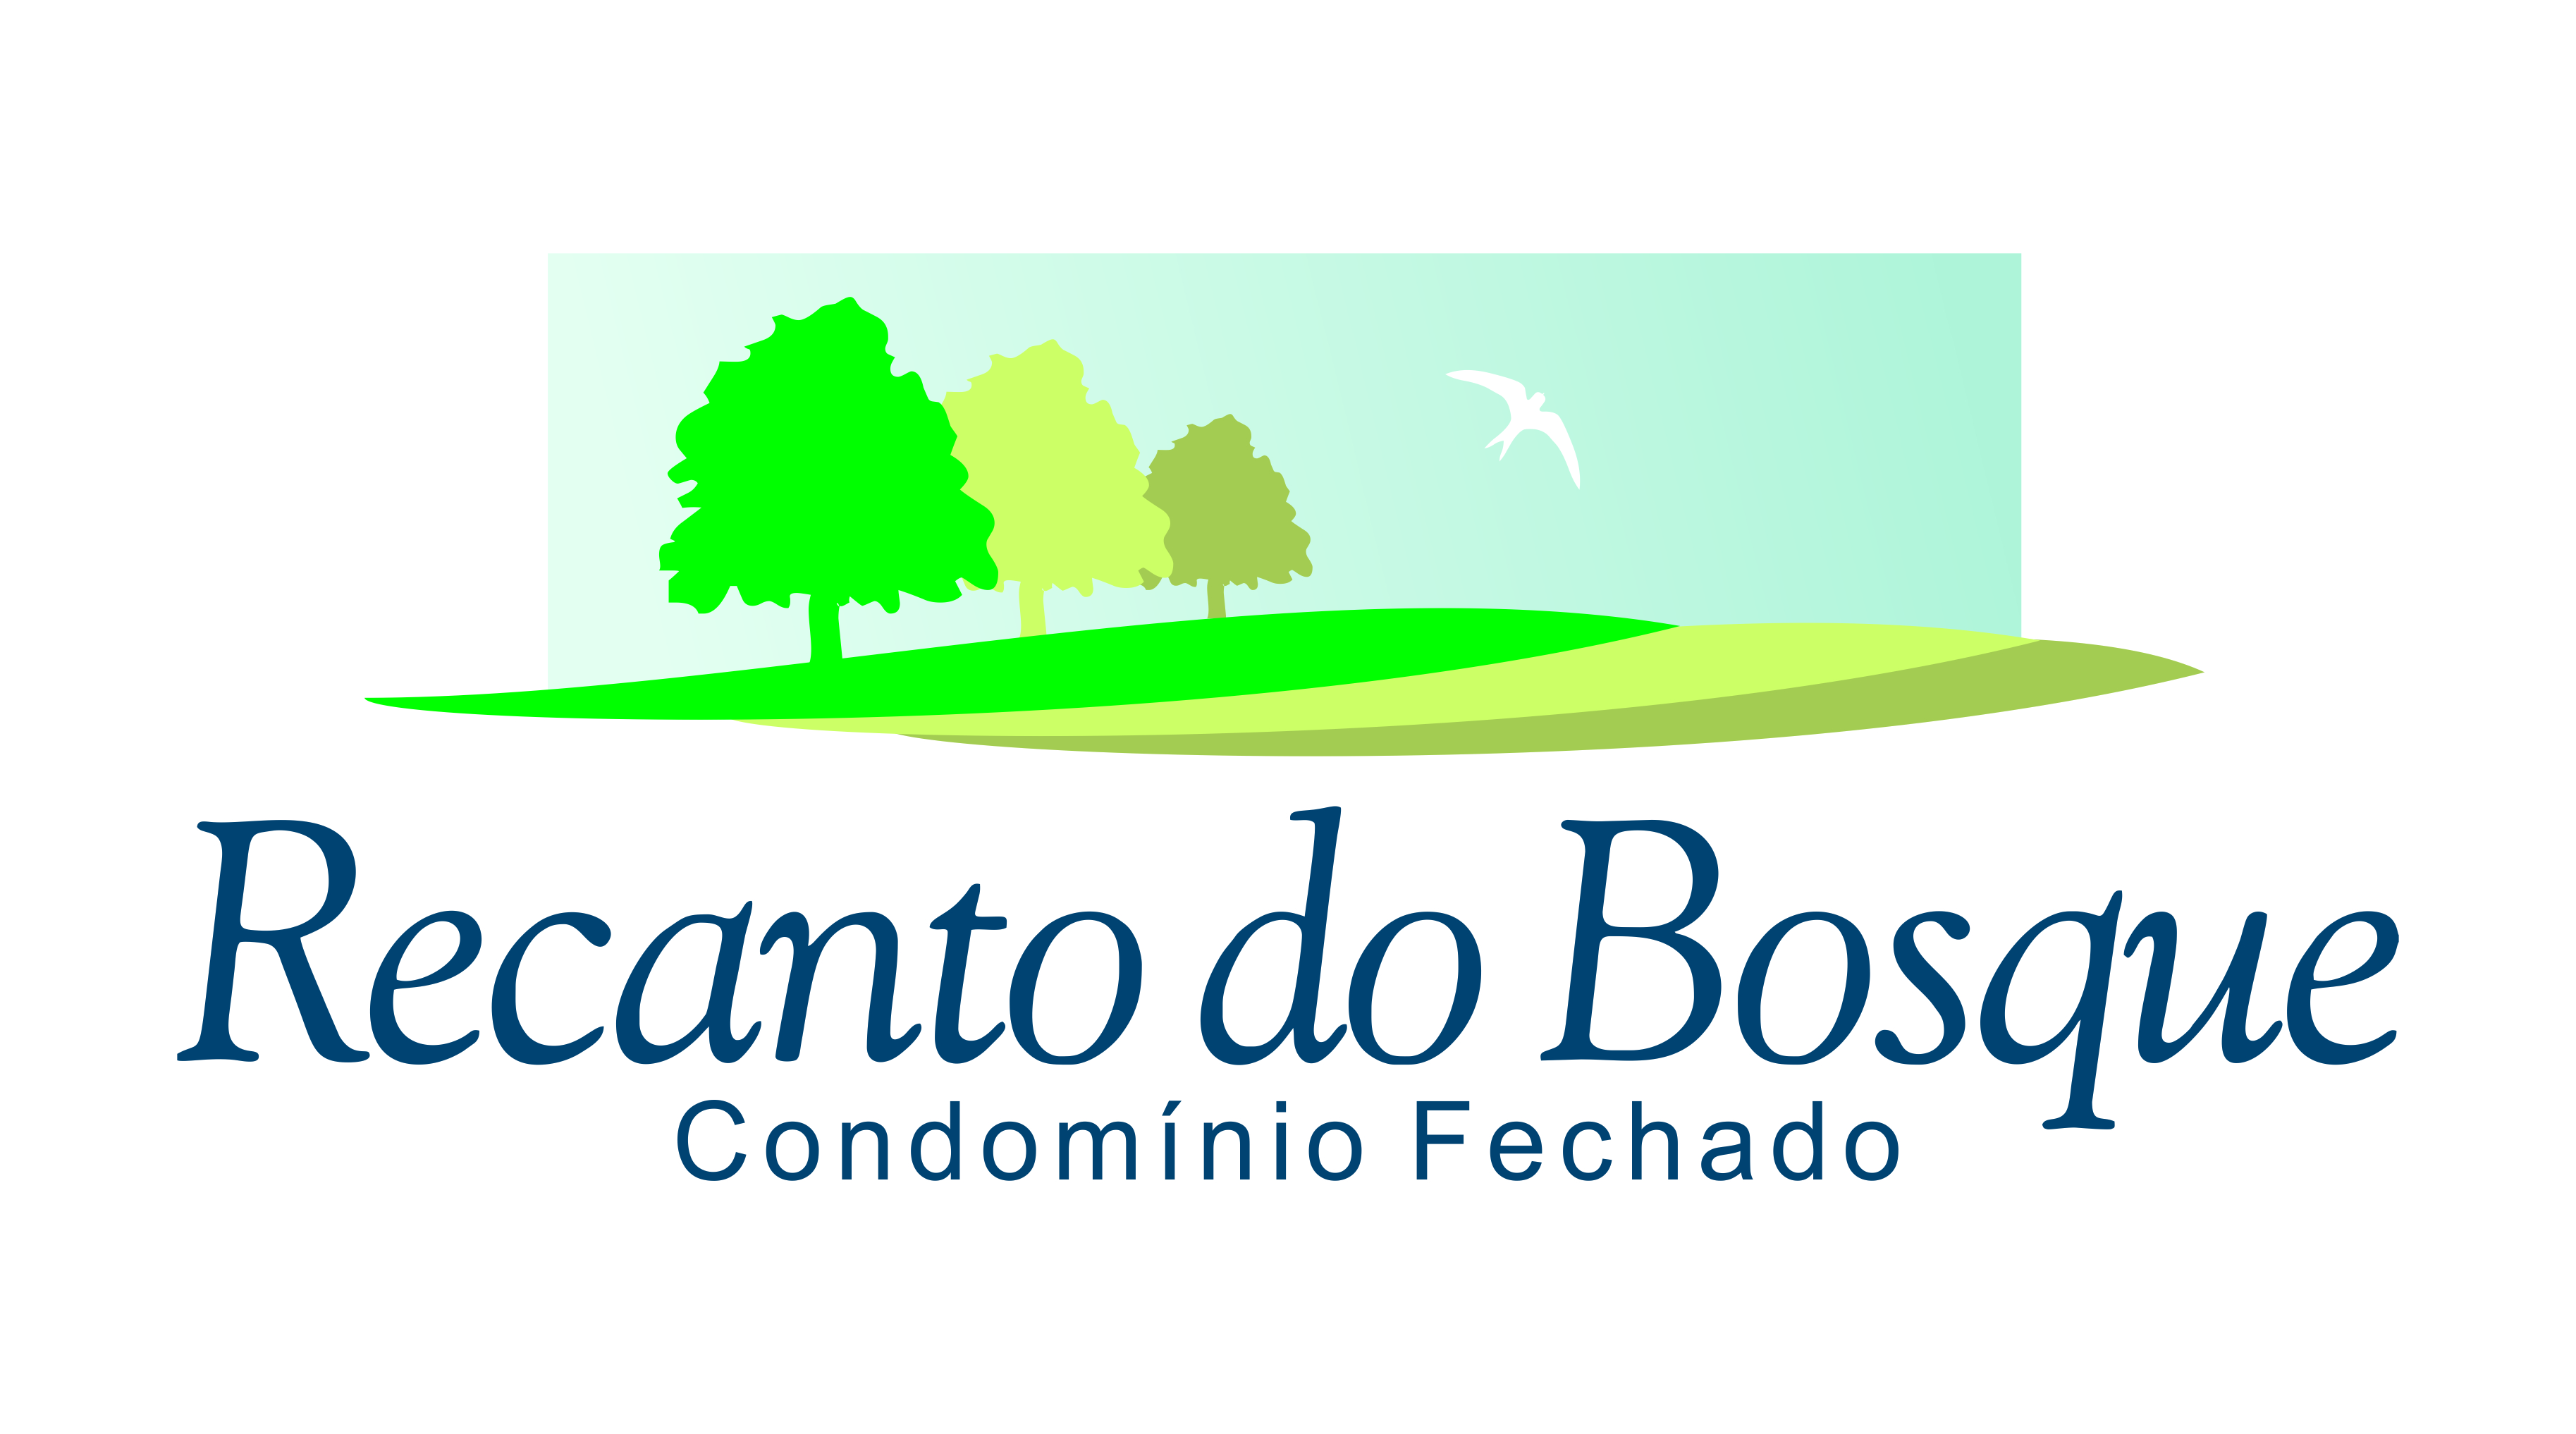 recanto do bosque